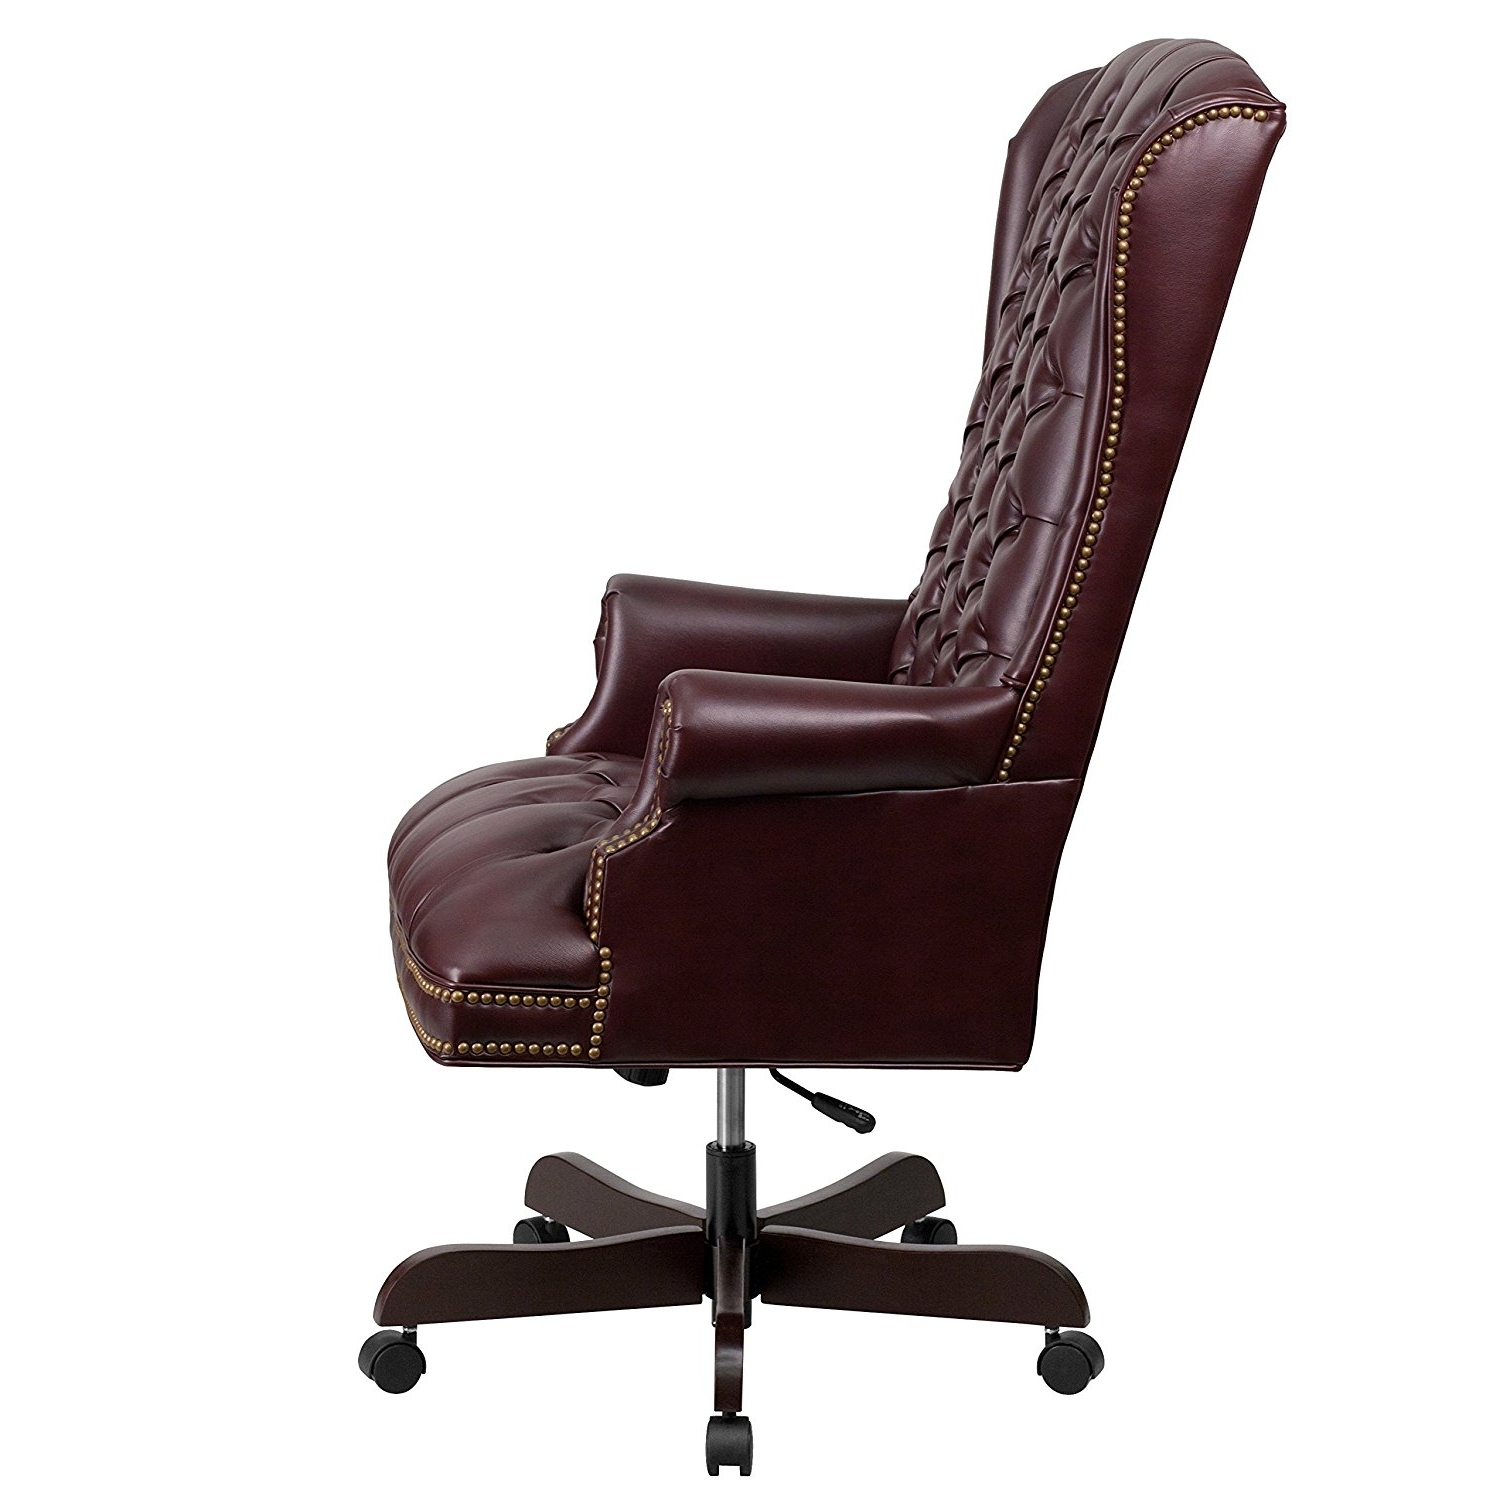 Chair : High Back Executive Leather Office Chair Lumbar Support With Regard To Well Known Executive Office Chairs With Back Support (View 17 of 20)